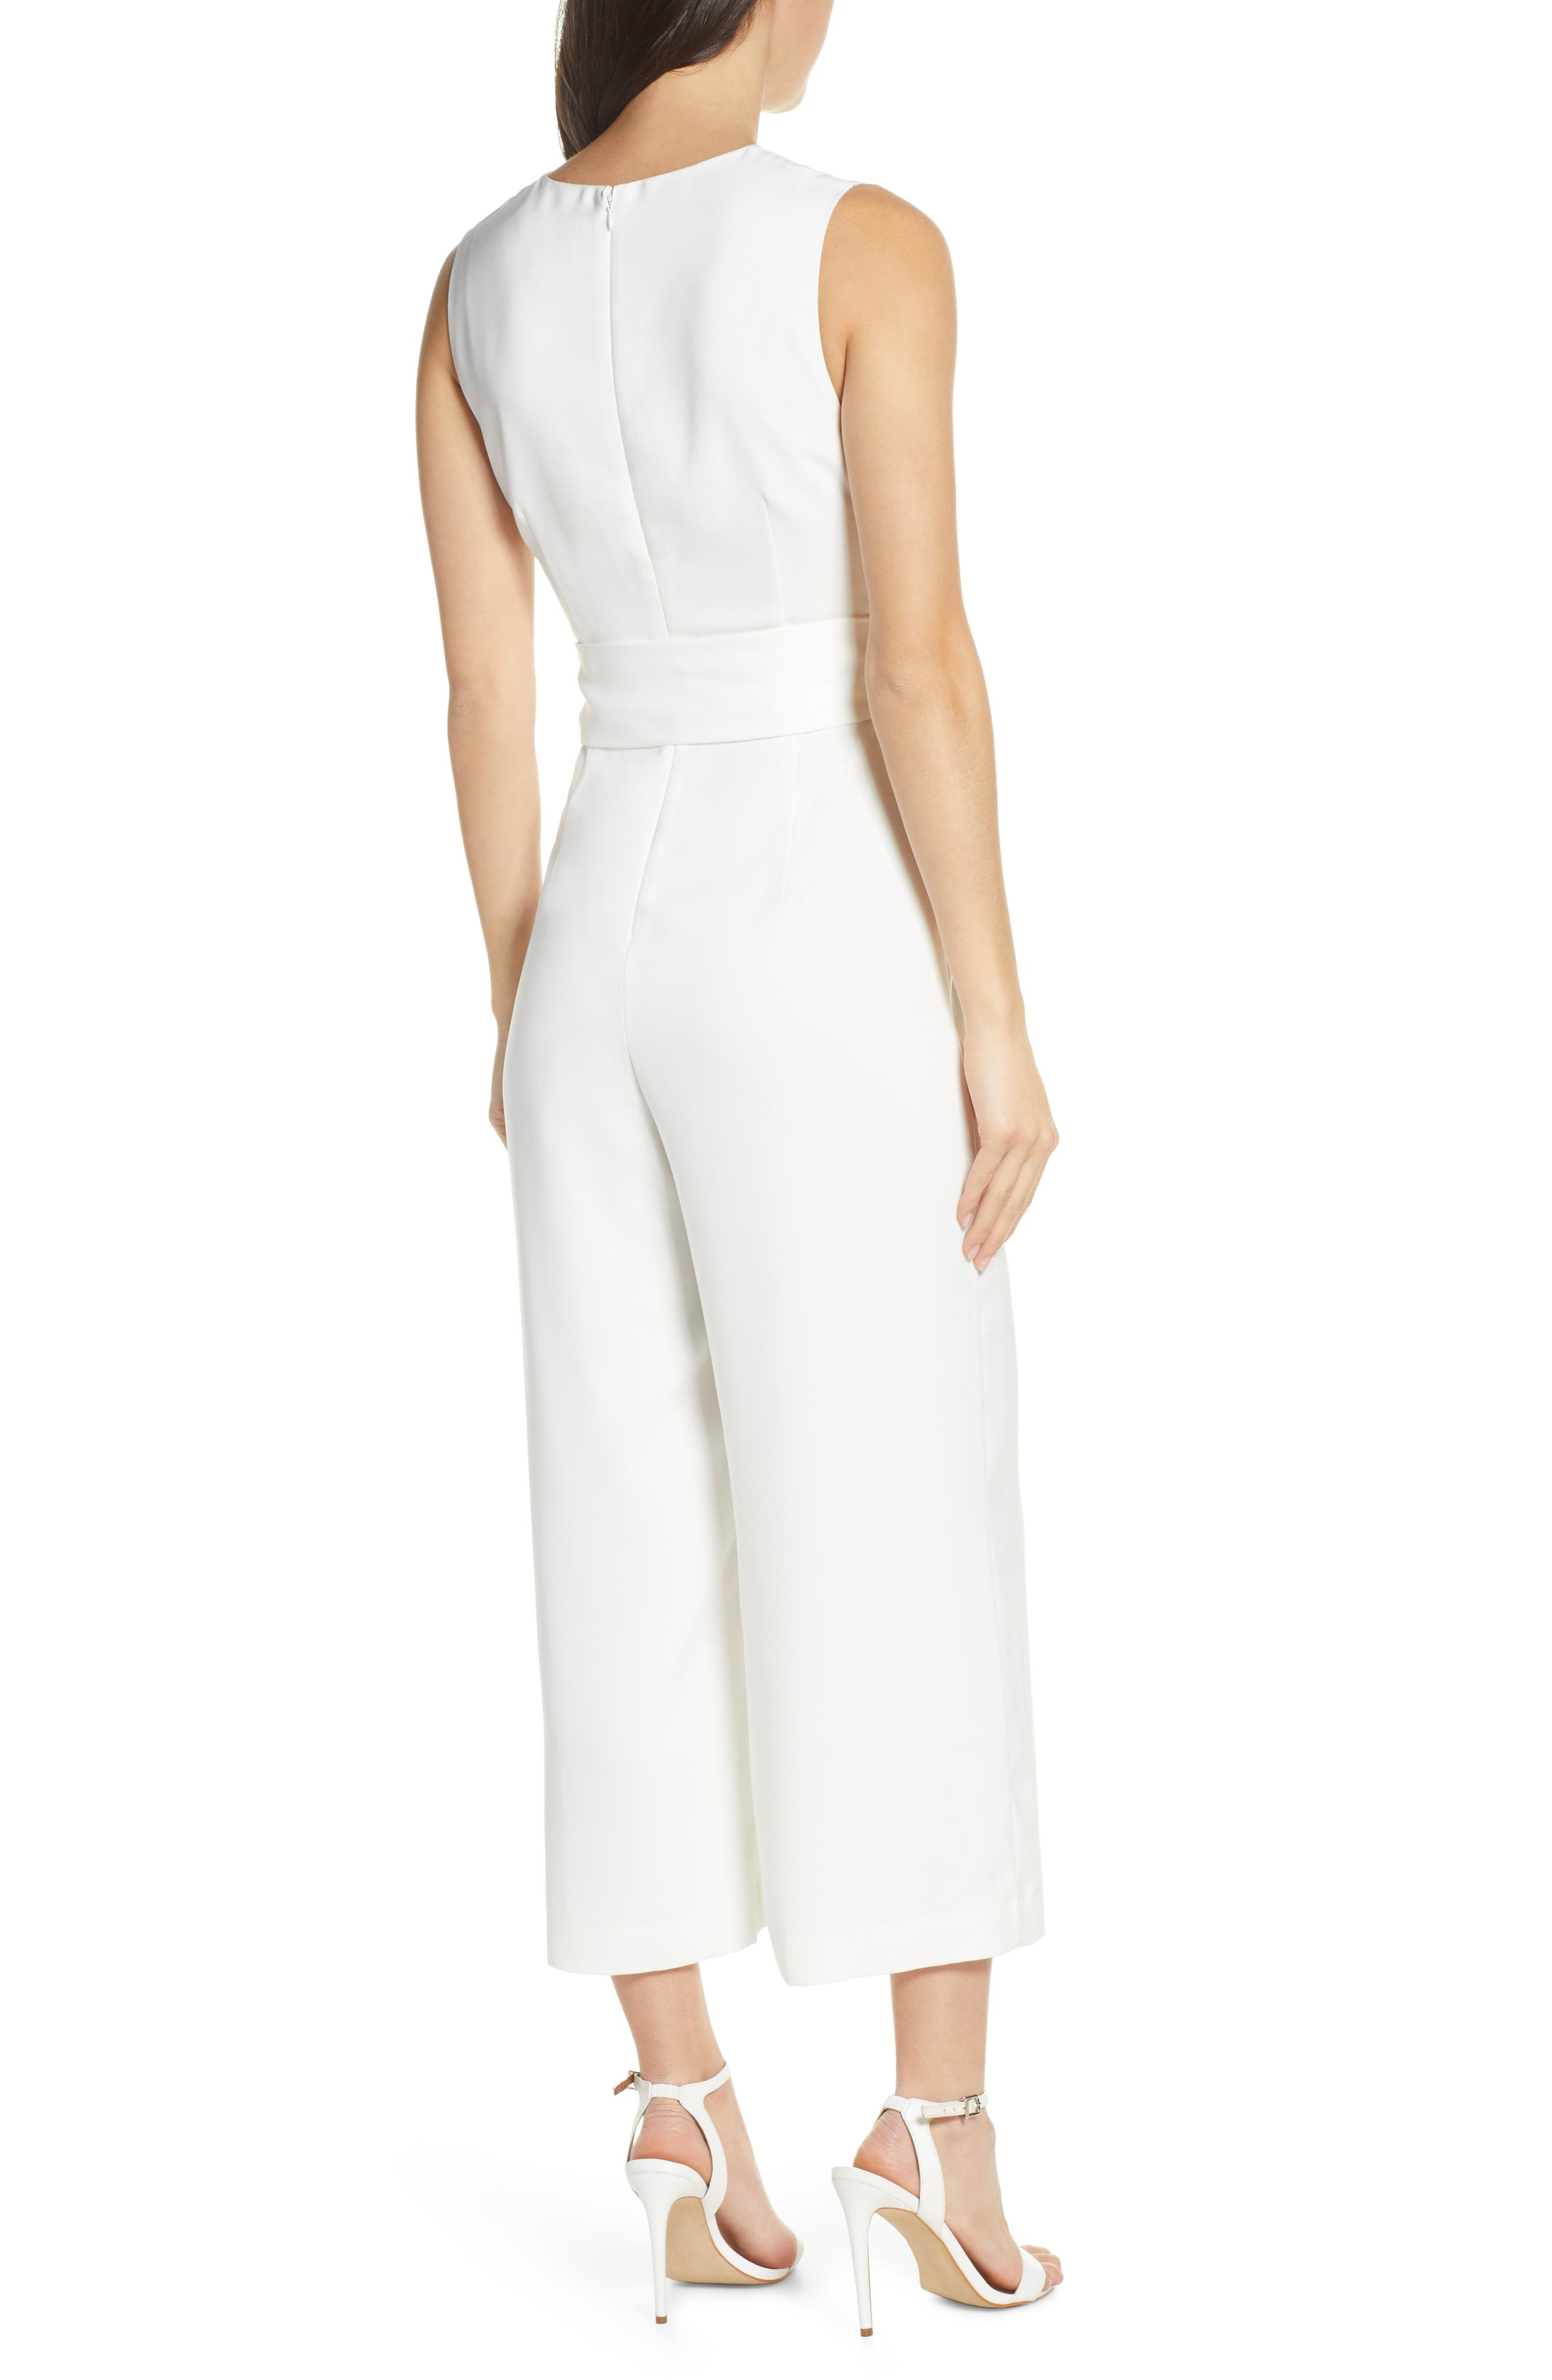 CHARLES HENRY, Sleeveless Culotte Jumpsuit, Alternate thumbnail 2, color, IVORY